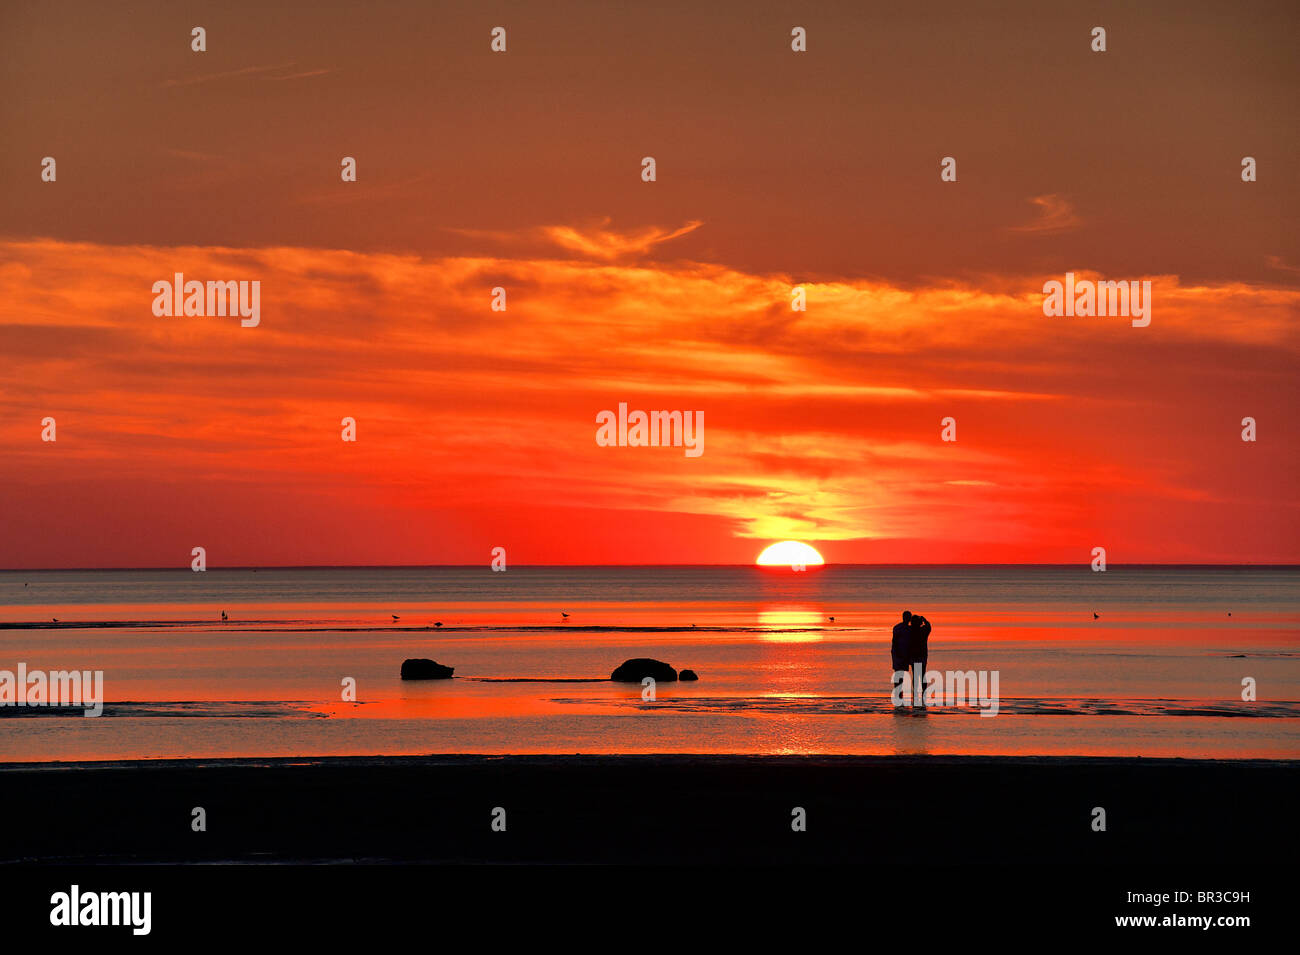 Couple watches sunset together, Skaket beach, Cape Cod, Massachusetts, USA - Stock Image